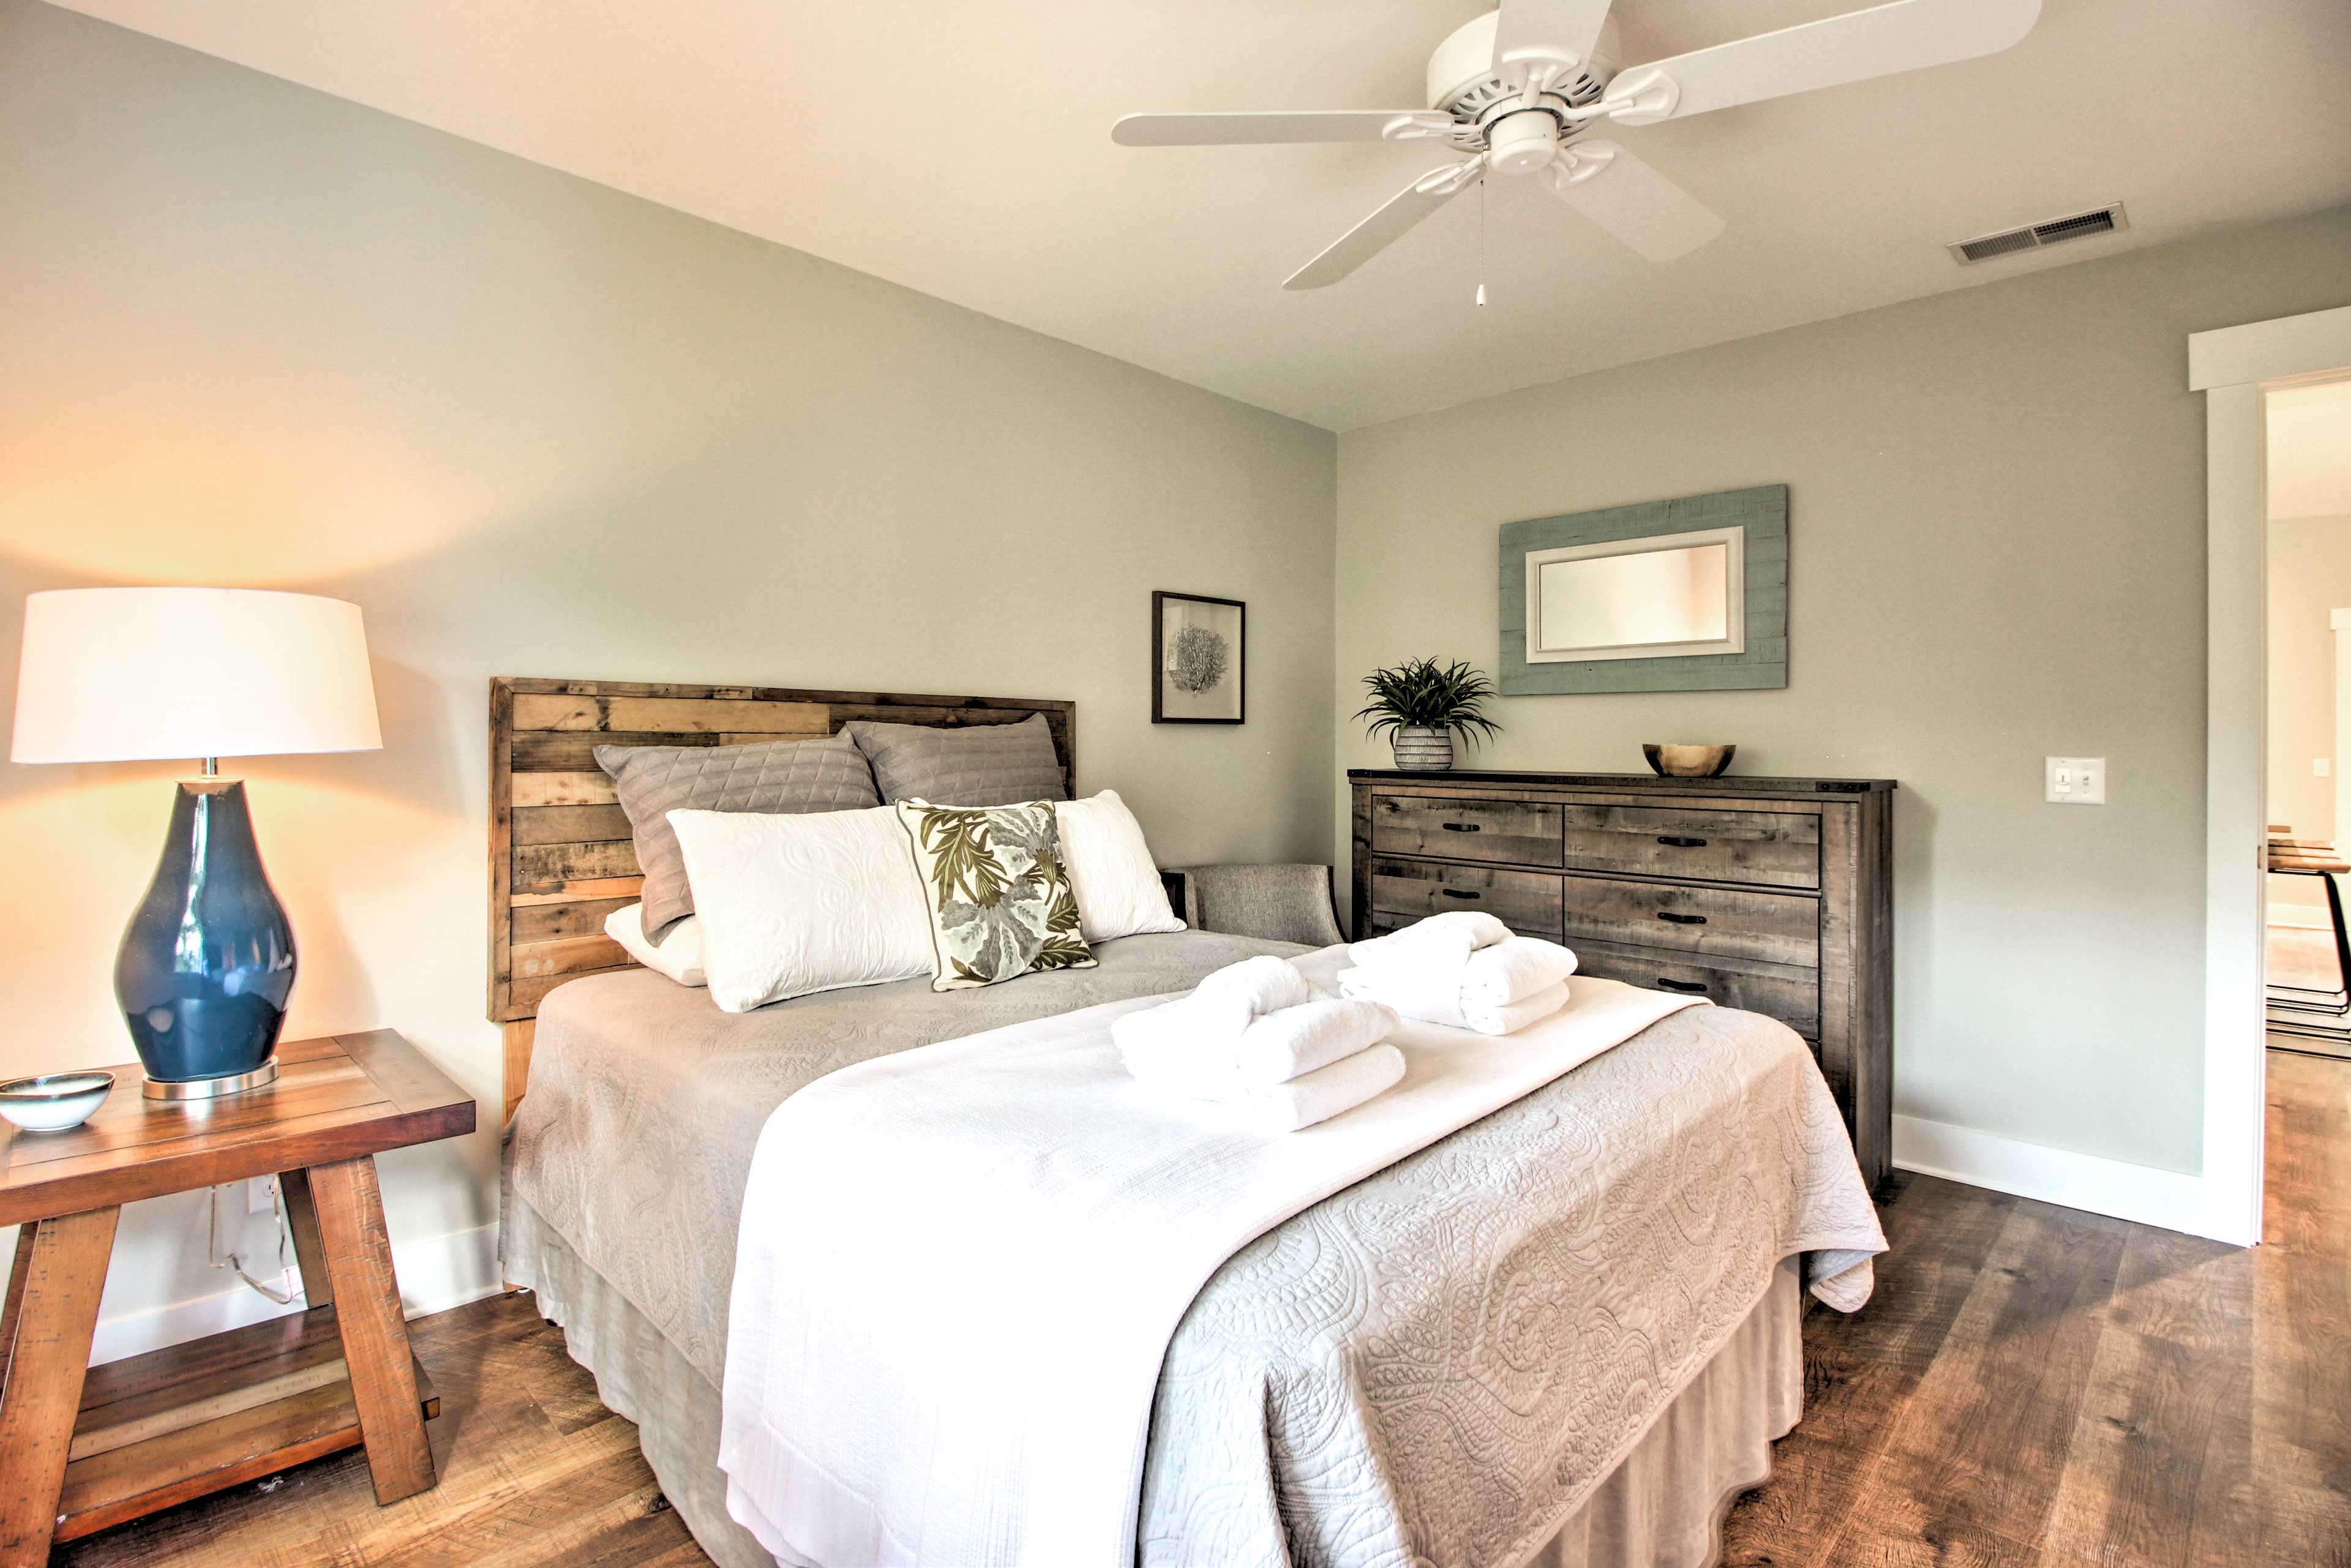 This condo features 1 beautiful bedroom.